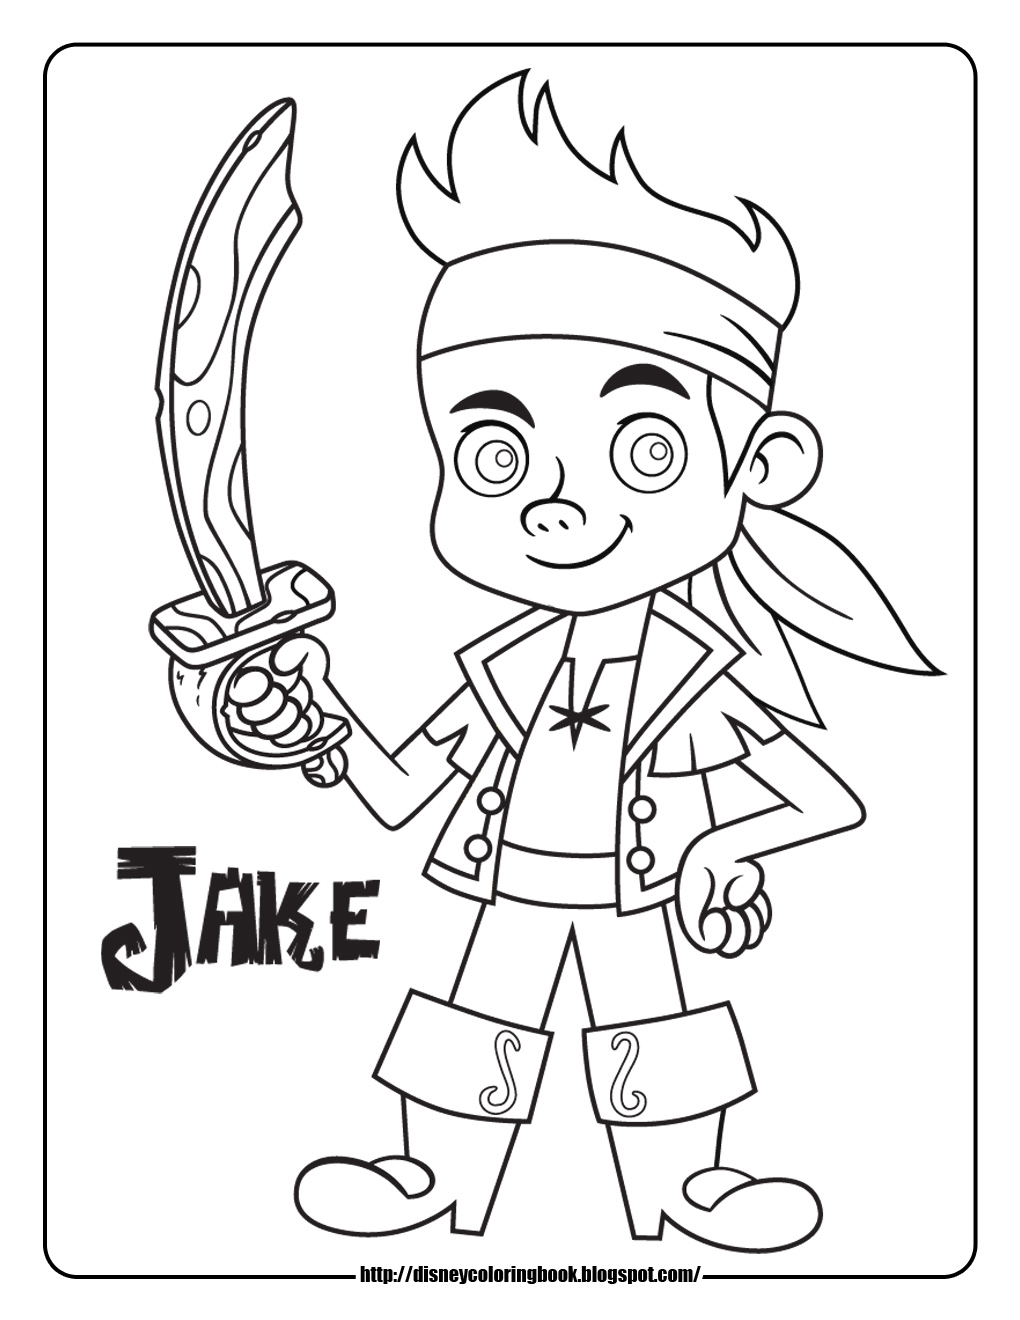 Disney Coloring Pages and Sheets for Kids: Jake and the ...  Disney Coloring...